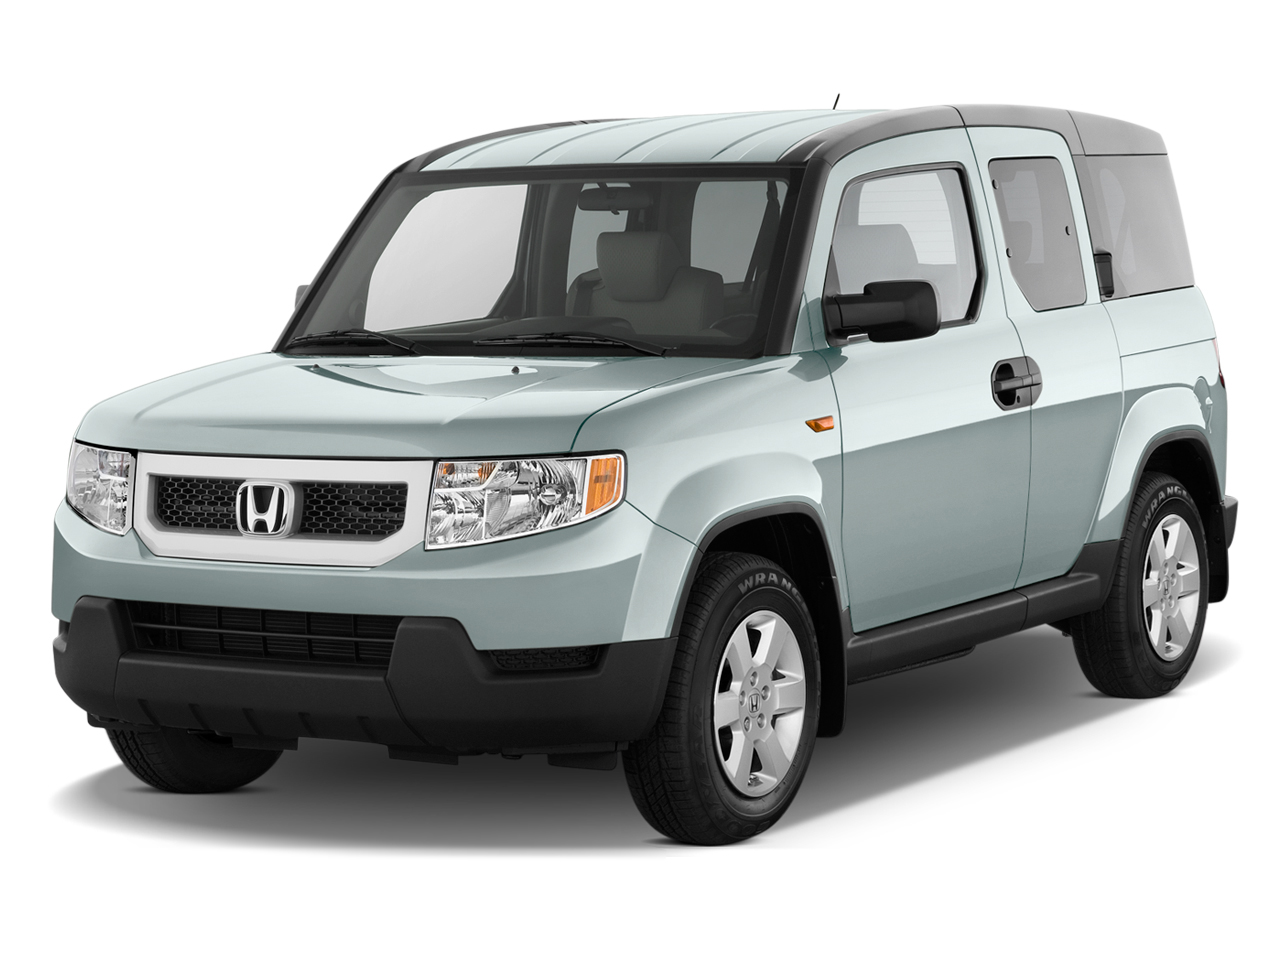 Used Subaru Denver >> New and Used Honda Element: Prices, Photos, Reviews, Specs - The Car Connection